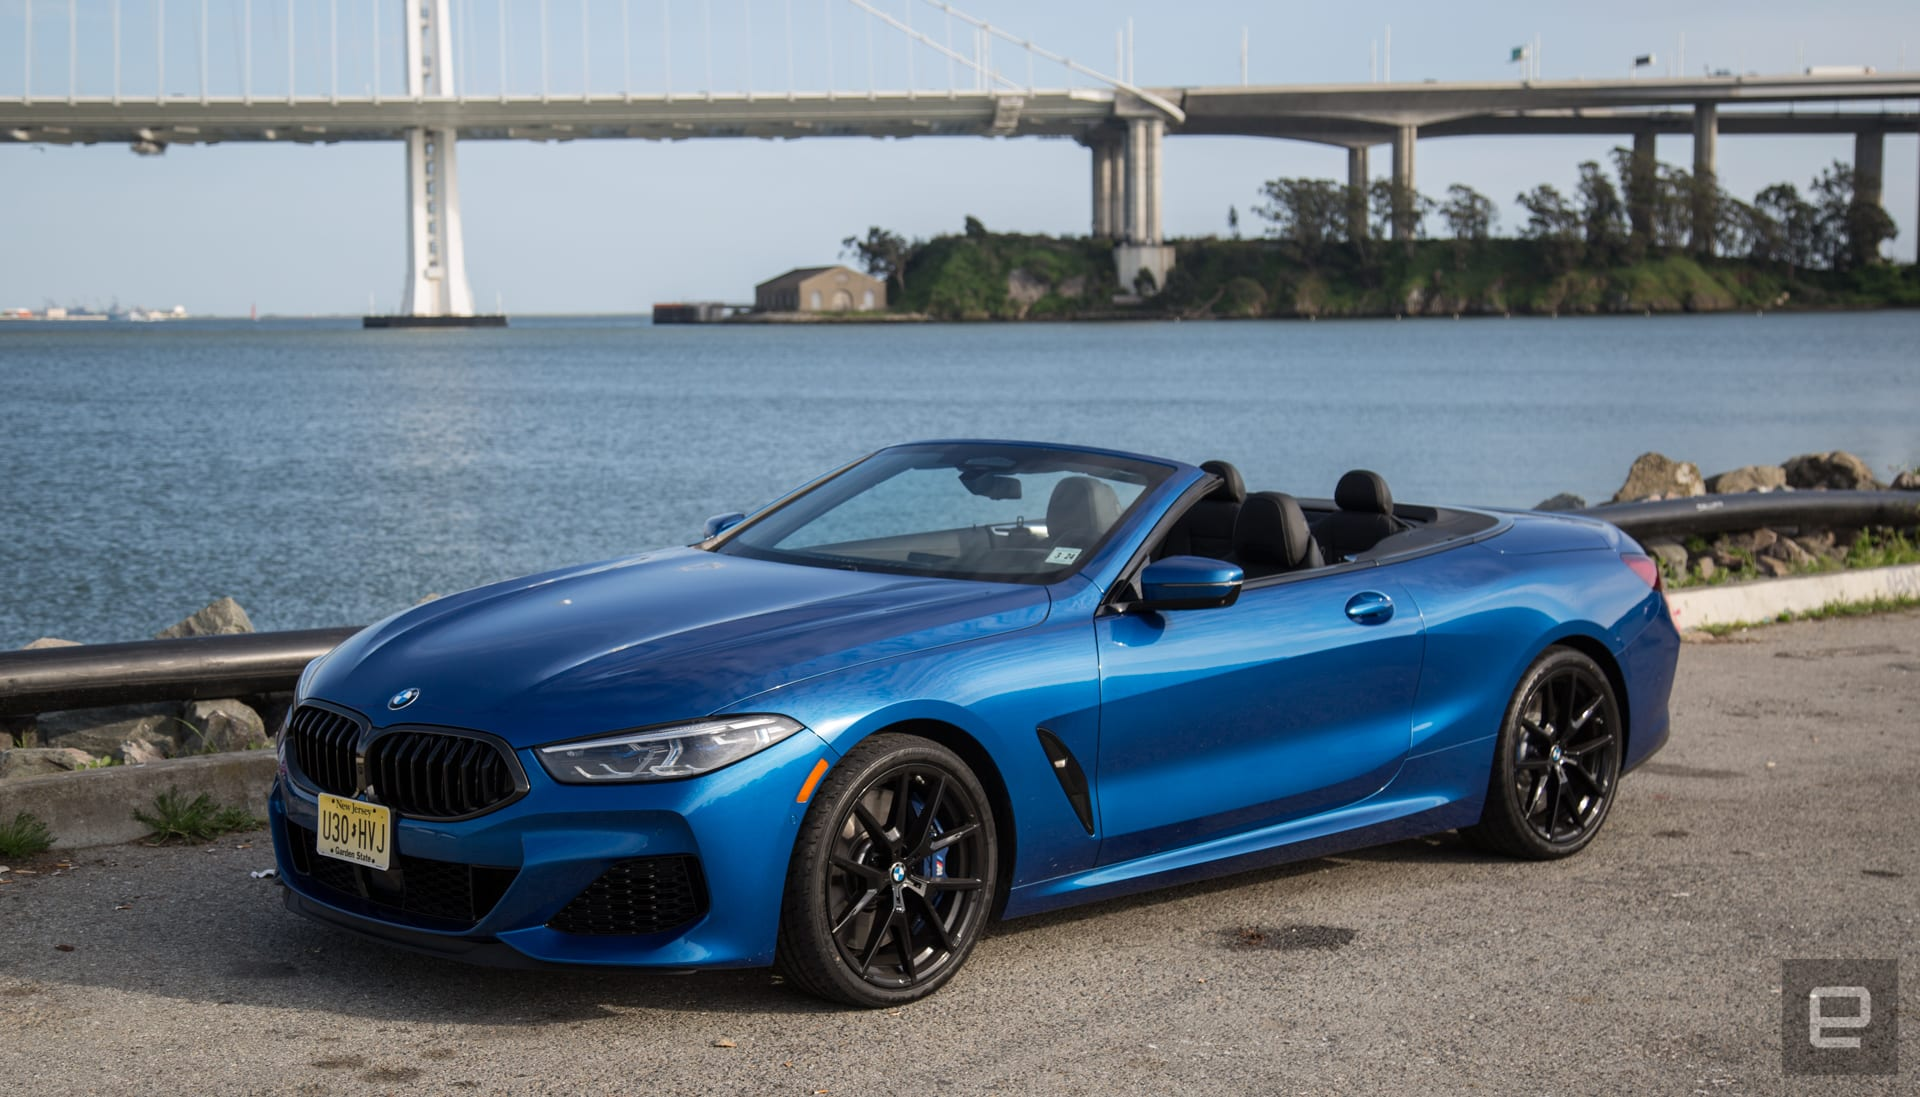 The BMW M850i elevates the road trip with high tech